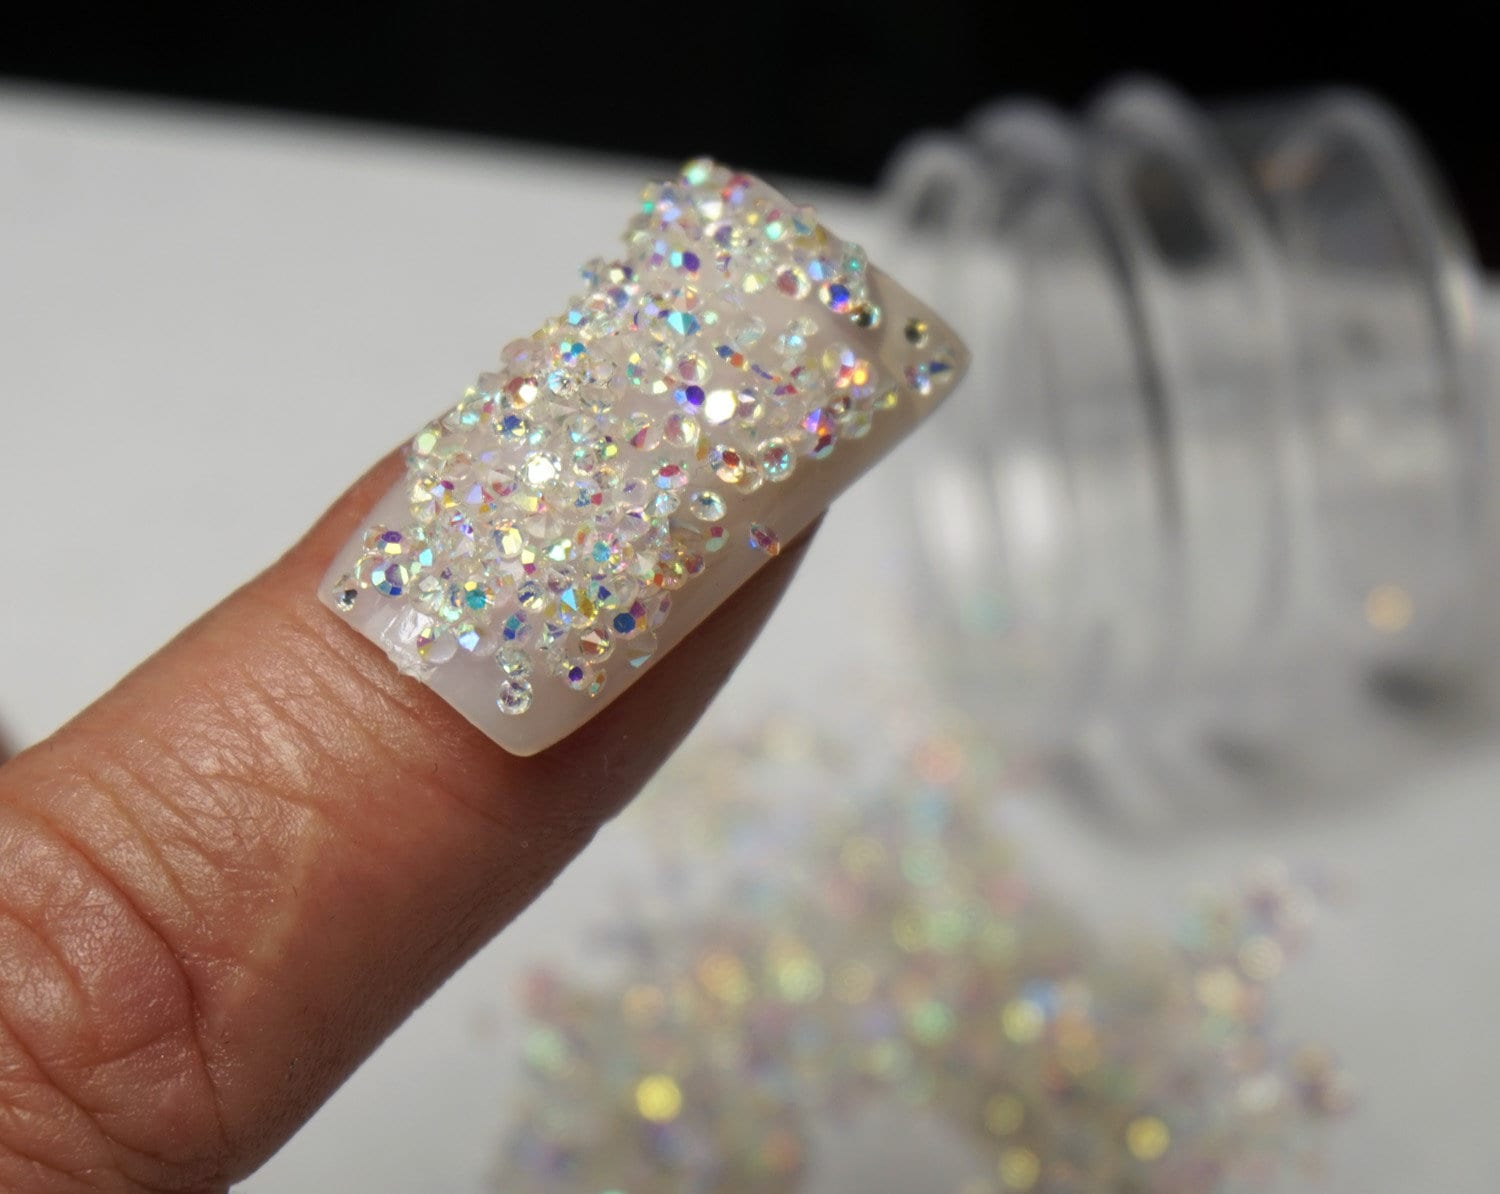 CRISTAUX SWAROVSKI Pour ONGLES Crystal Pixie Dust Micro Zircon Nail  Strassstones For Nail Art 1000 Crystals In Jar Holiday Petit cadeau pour  elle